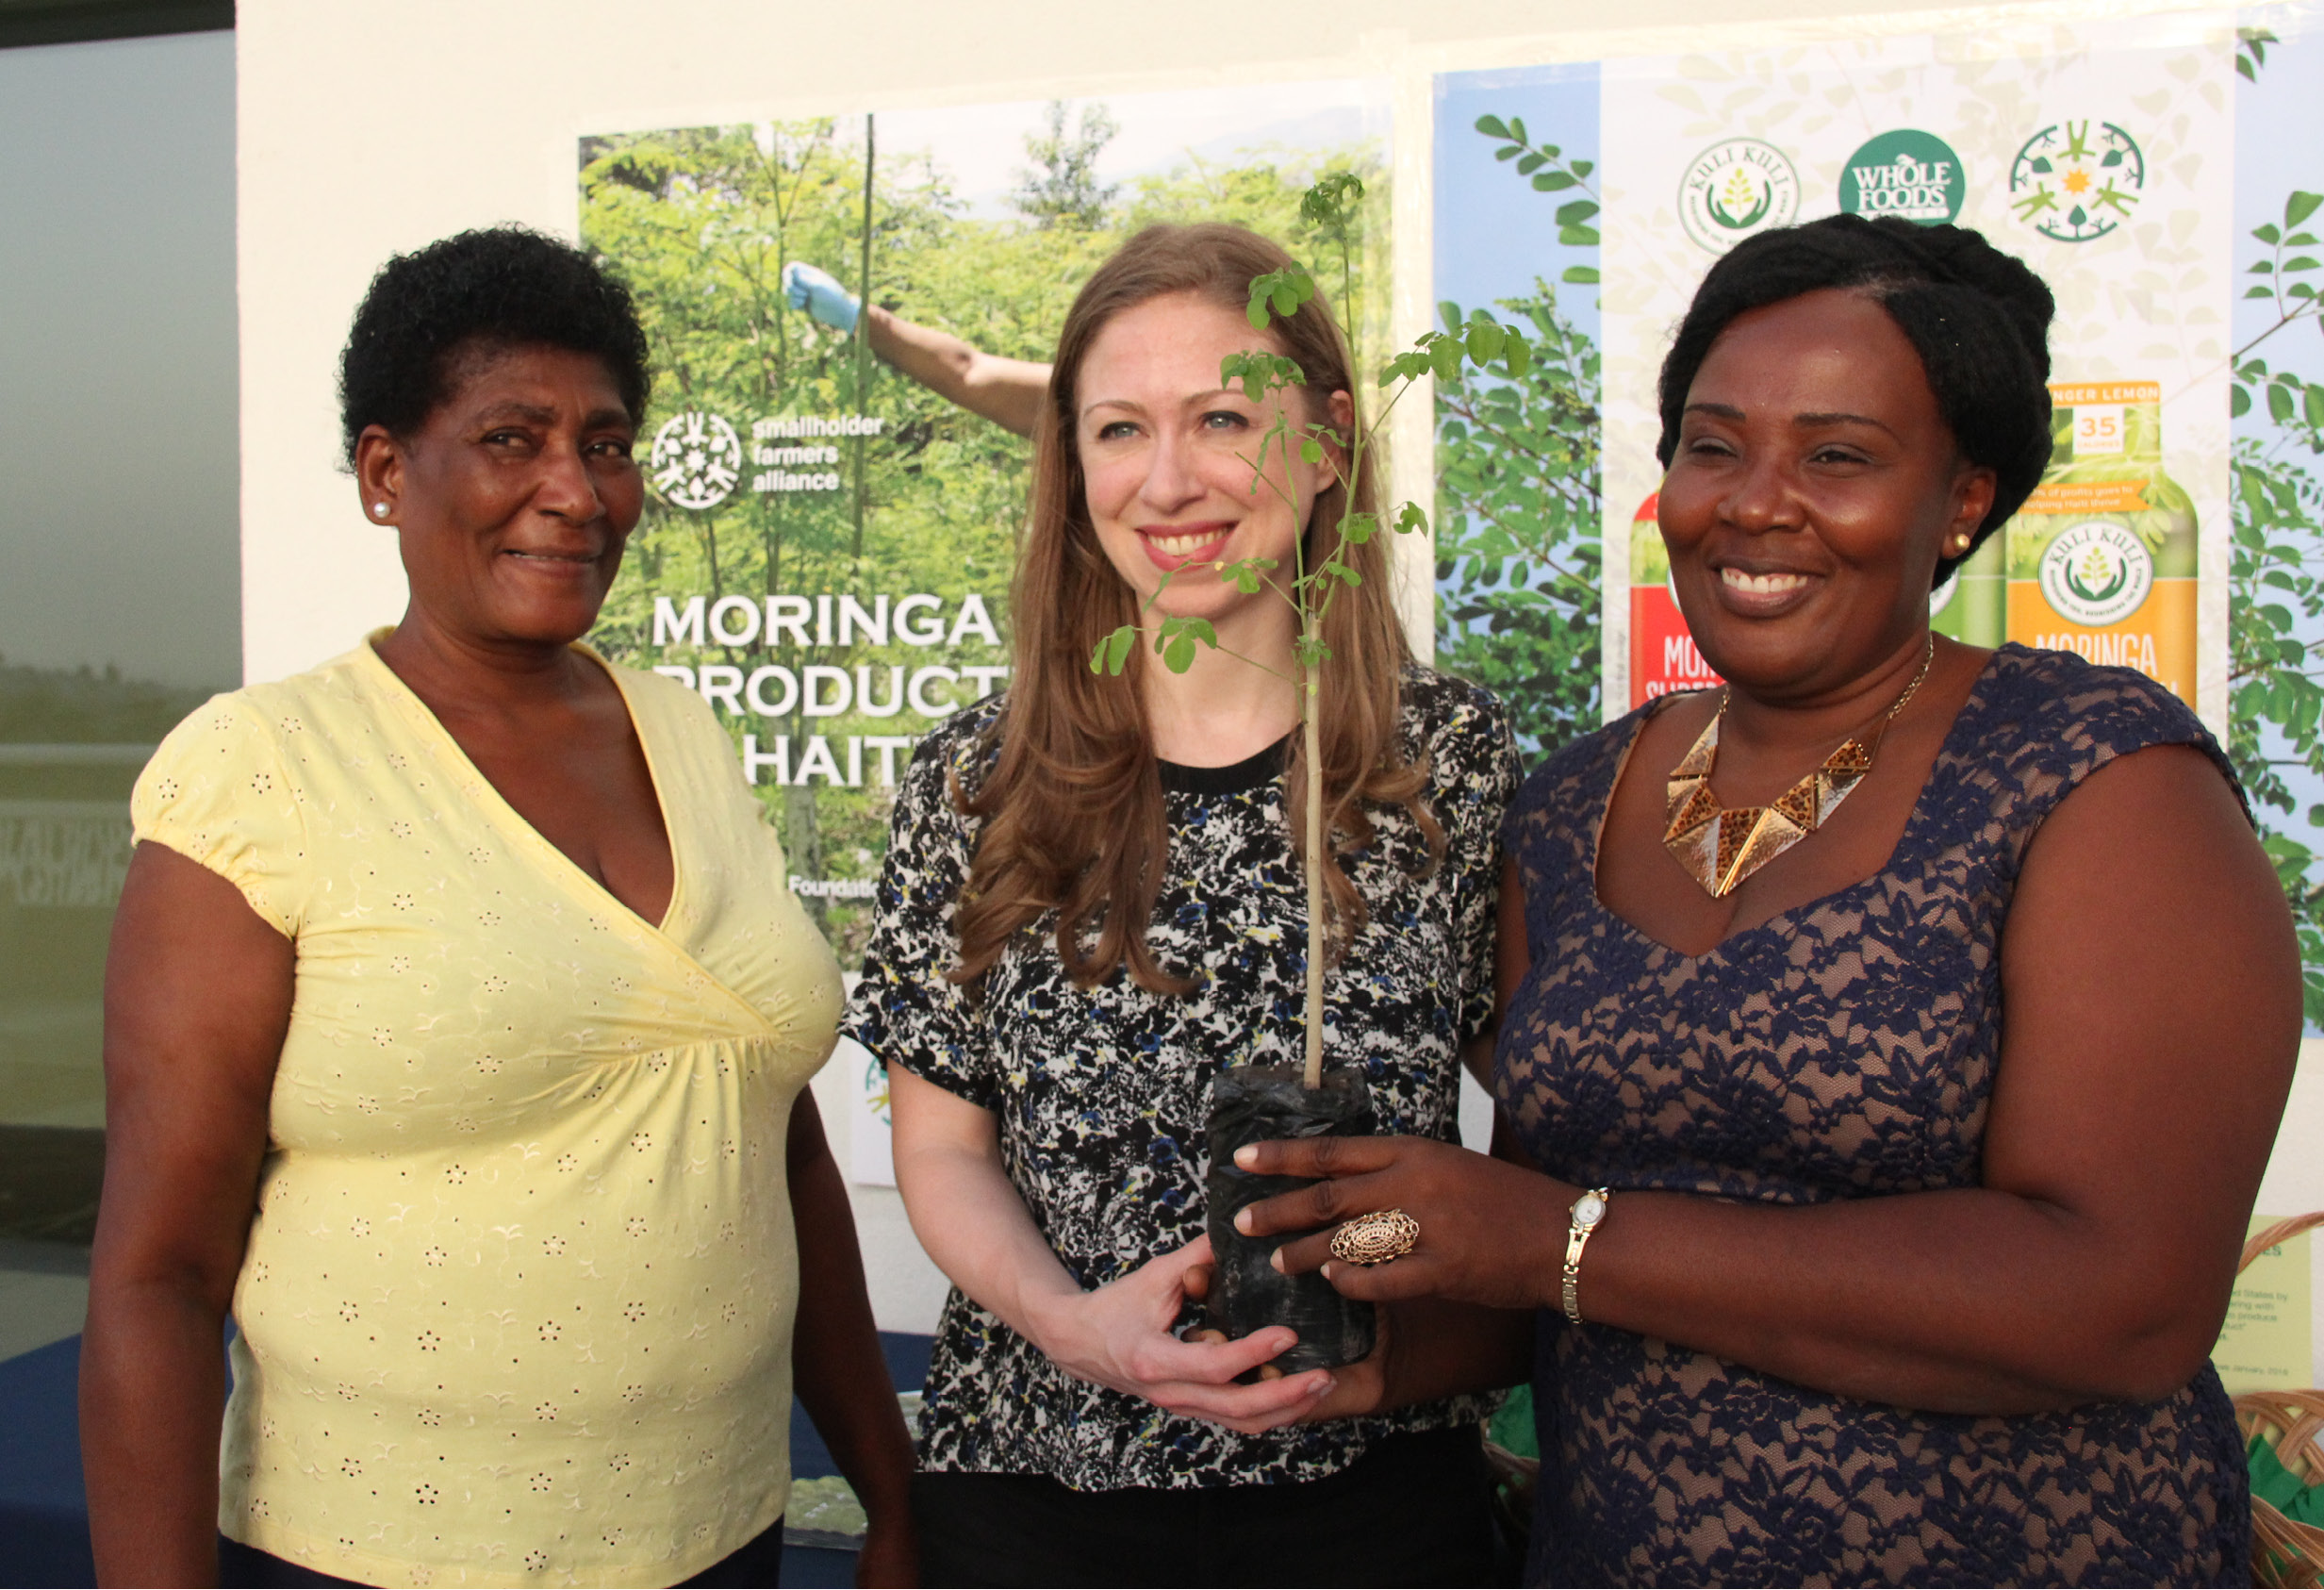 Chelsea Clinton with Kuli Kuli Moringa farmers